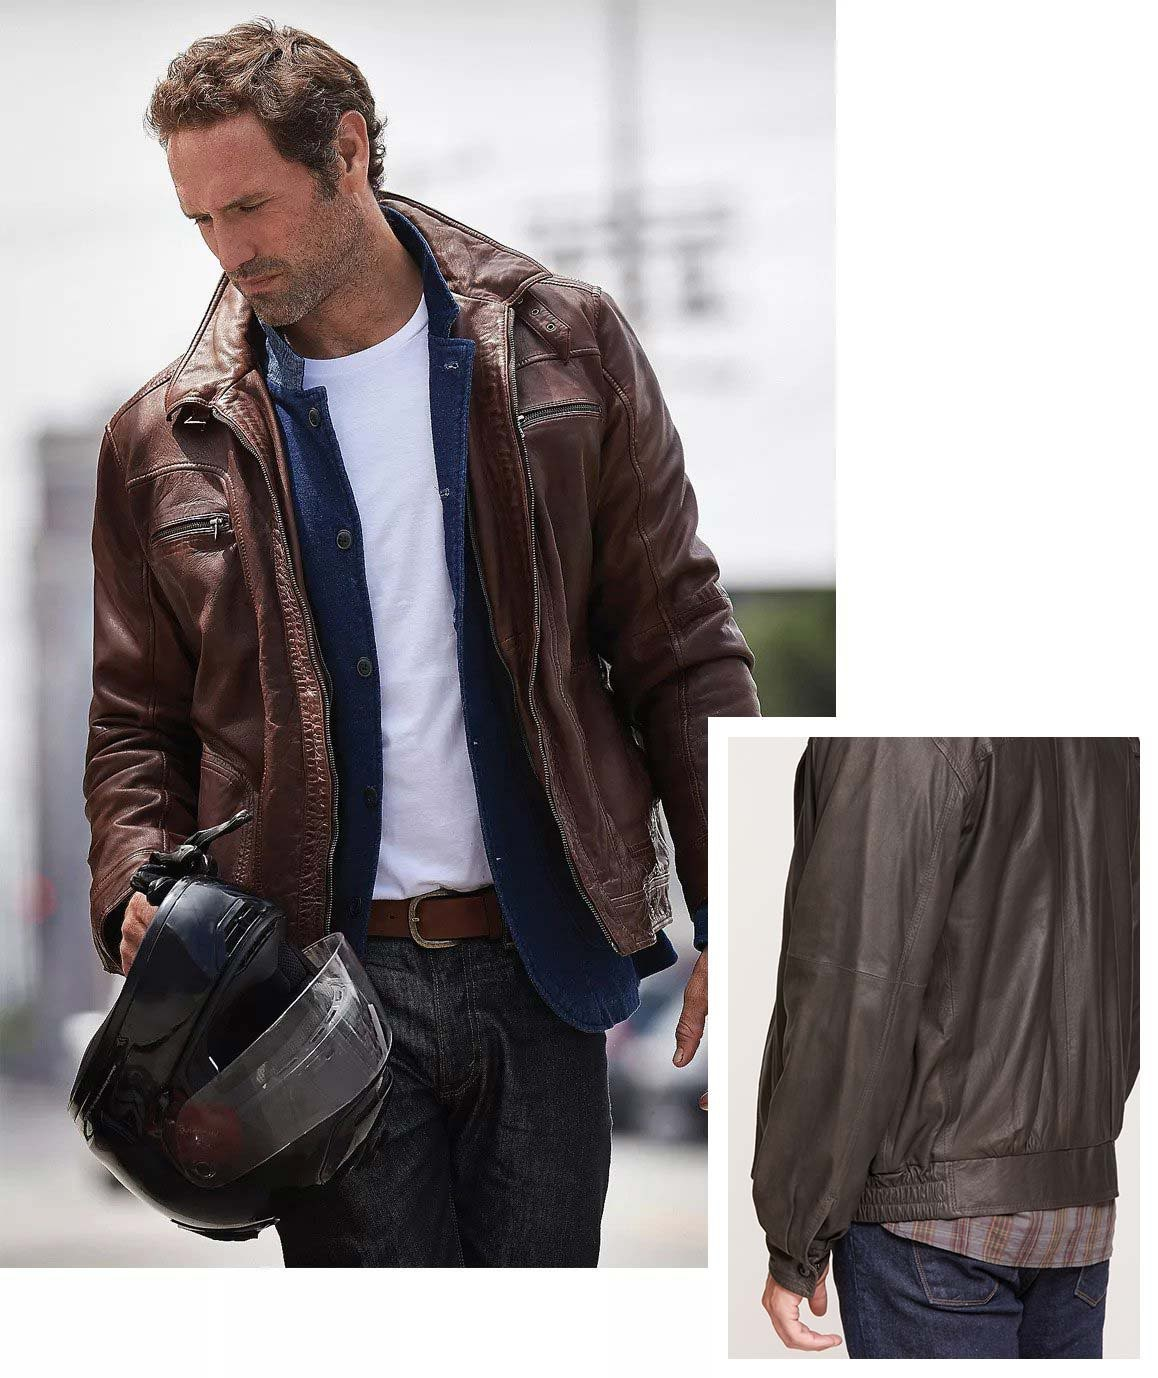 TOP ESSENTIAL GUIDELINES FOR BUYING A LEATHER JACKET